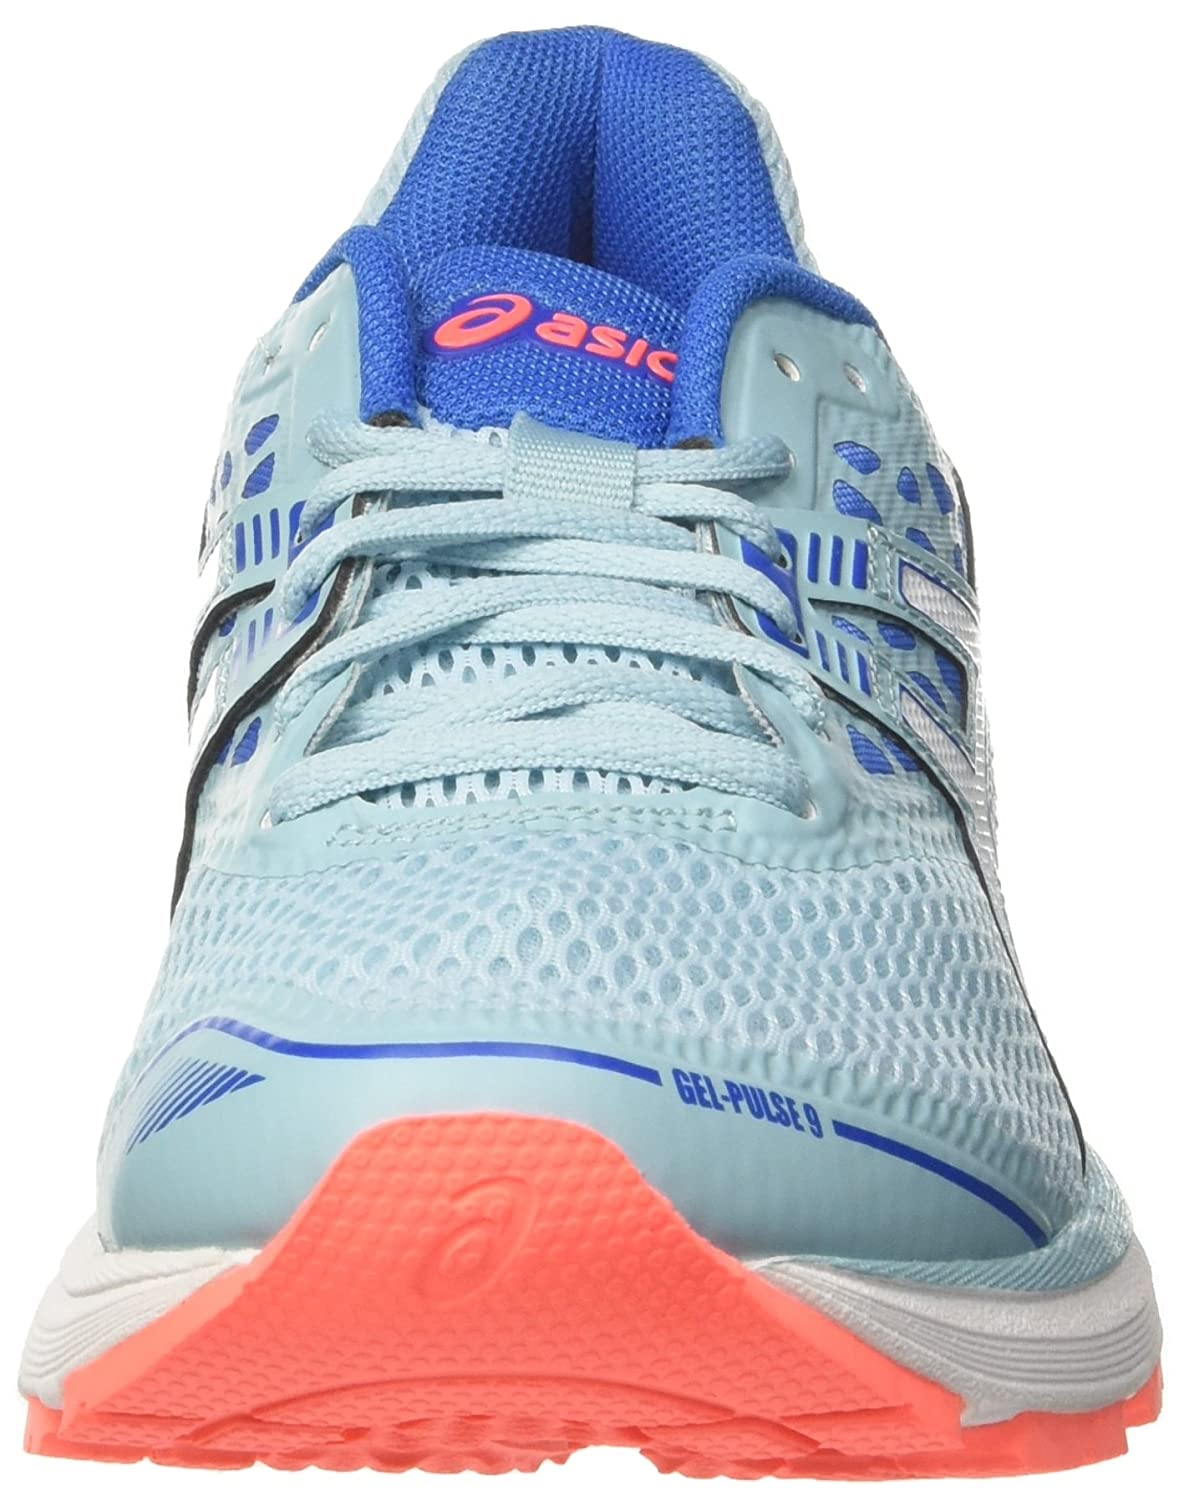 Mr.     Ms. ASICS Gel-Pulse 9, Scarpe Running Donna Specifica completa Fornitura sufficiente Molto pratico | Alta Qualità